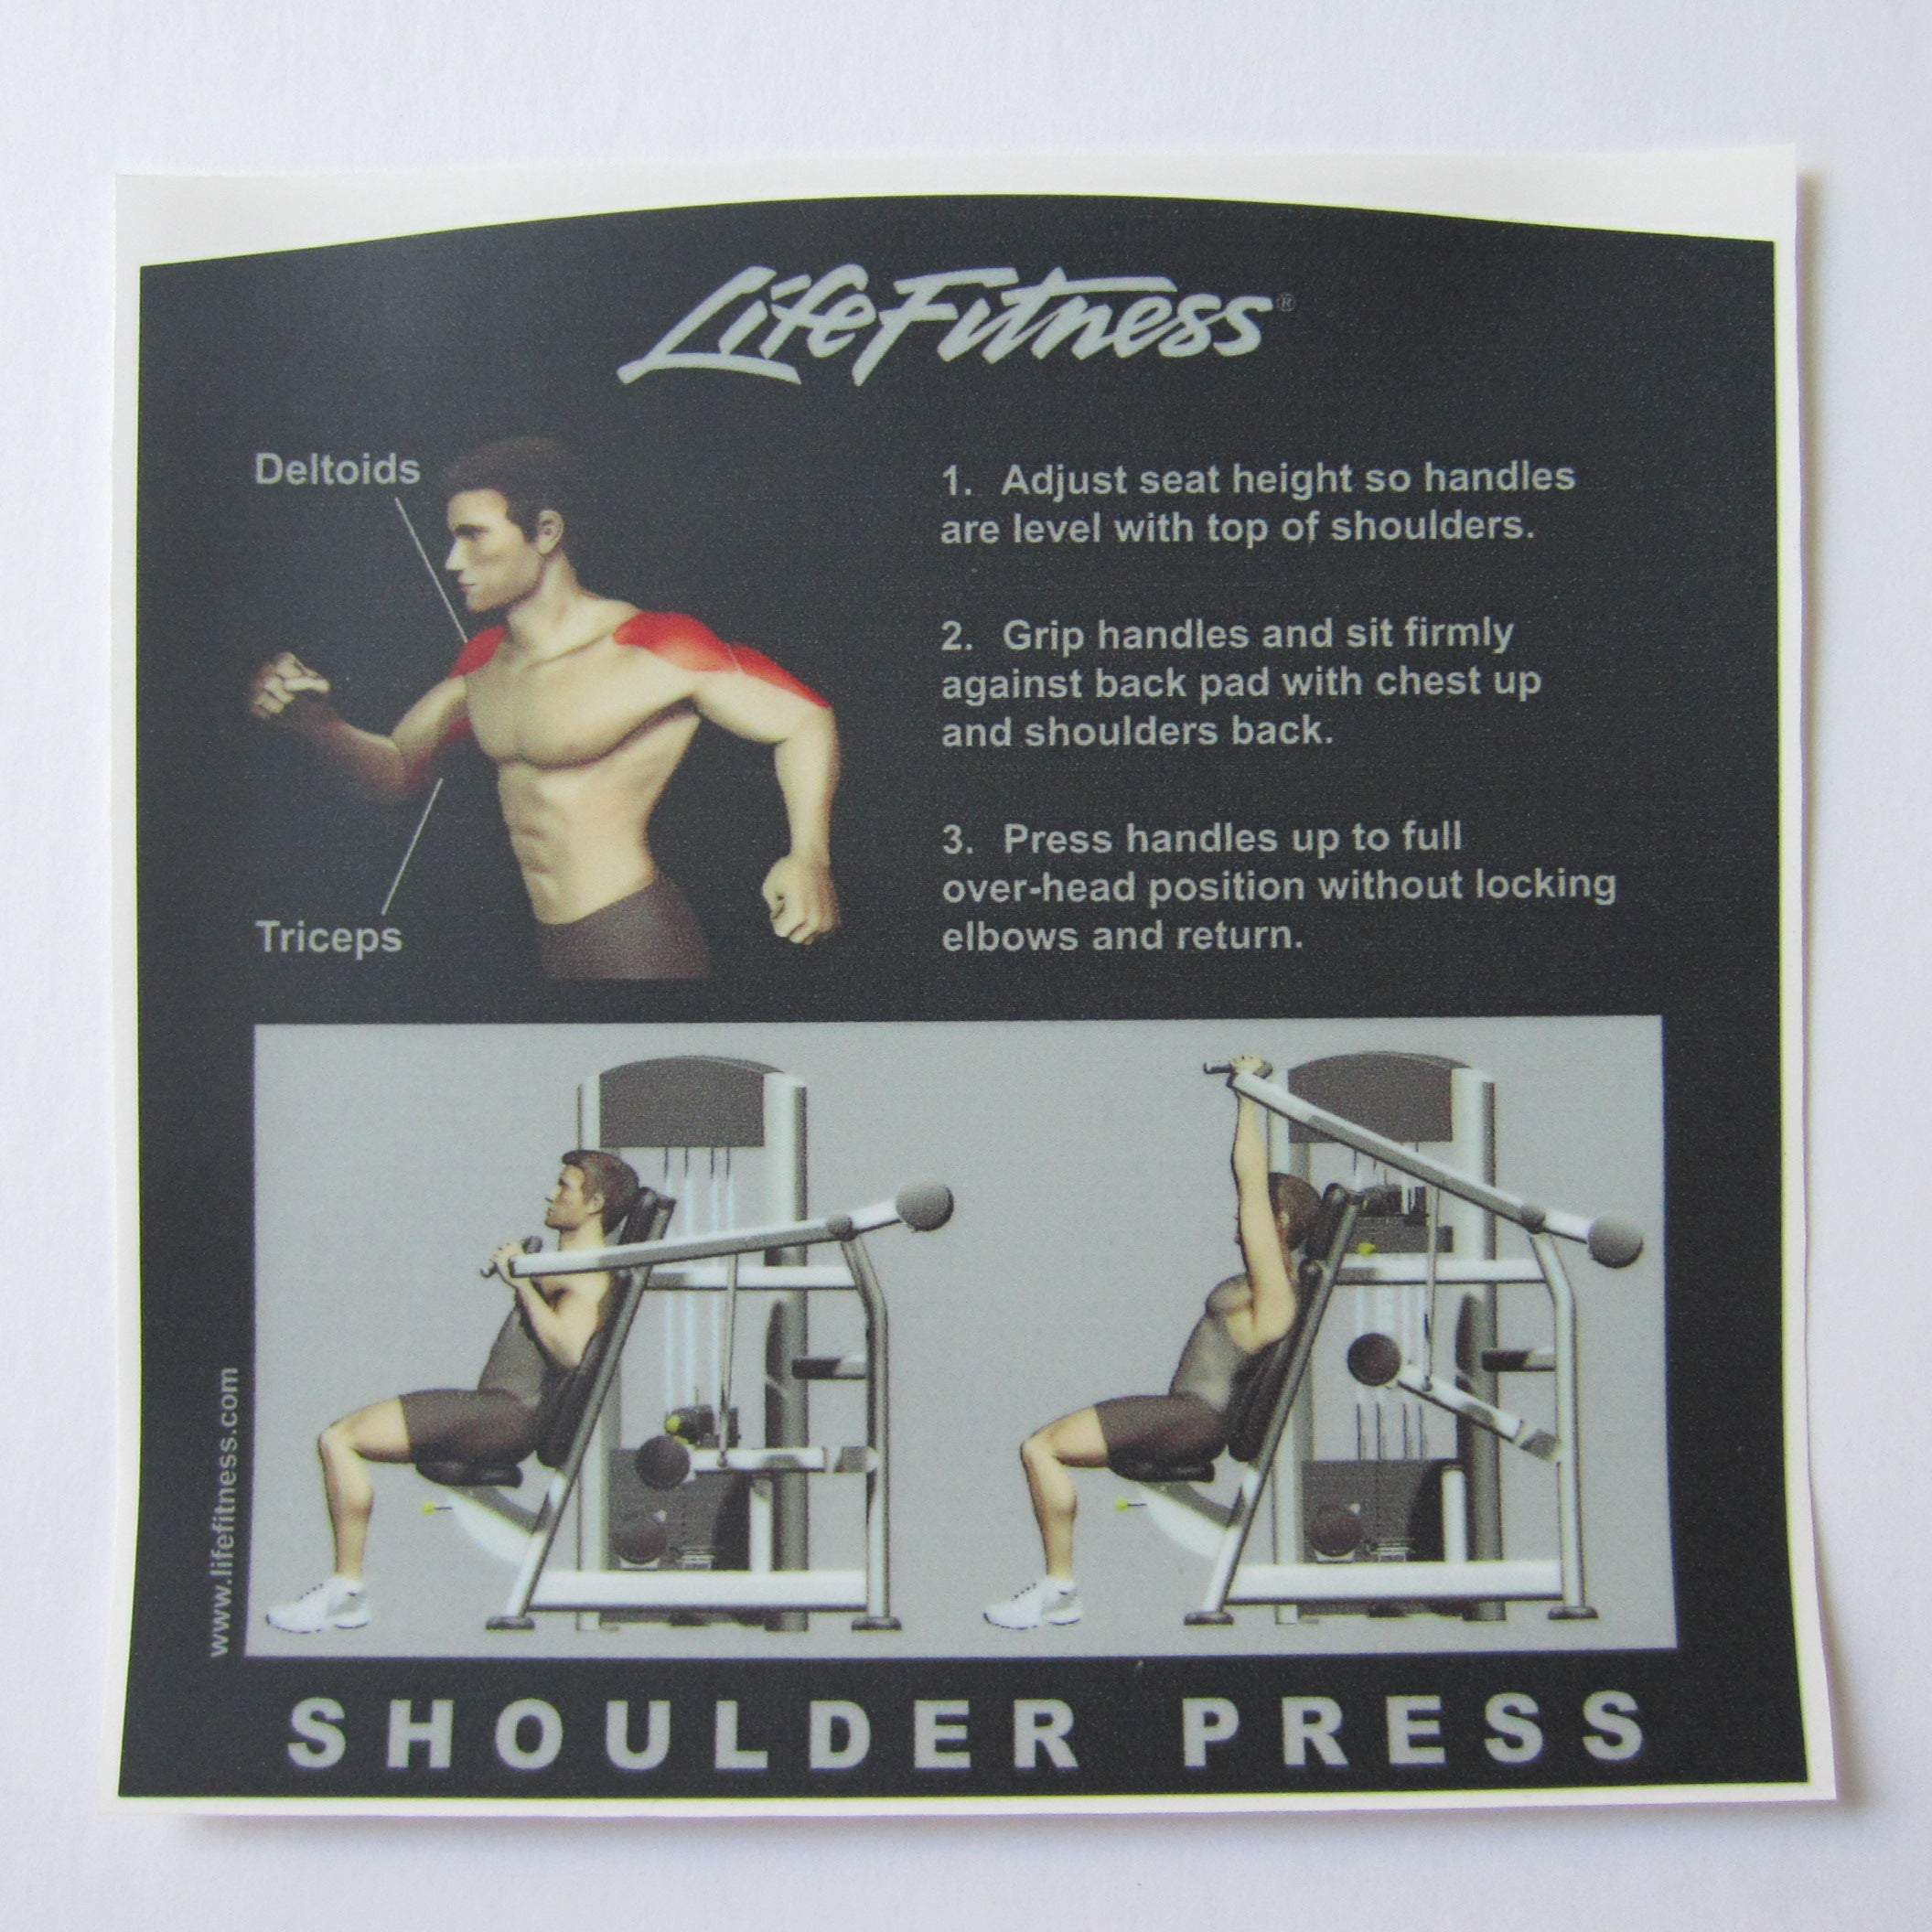 Life Fitness Signature Shoulder Press Instruction Decal